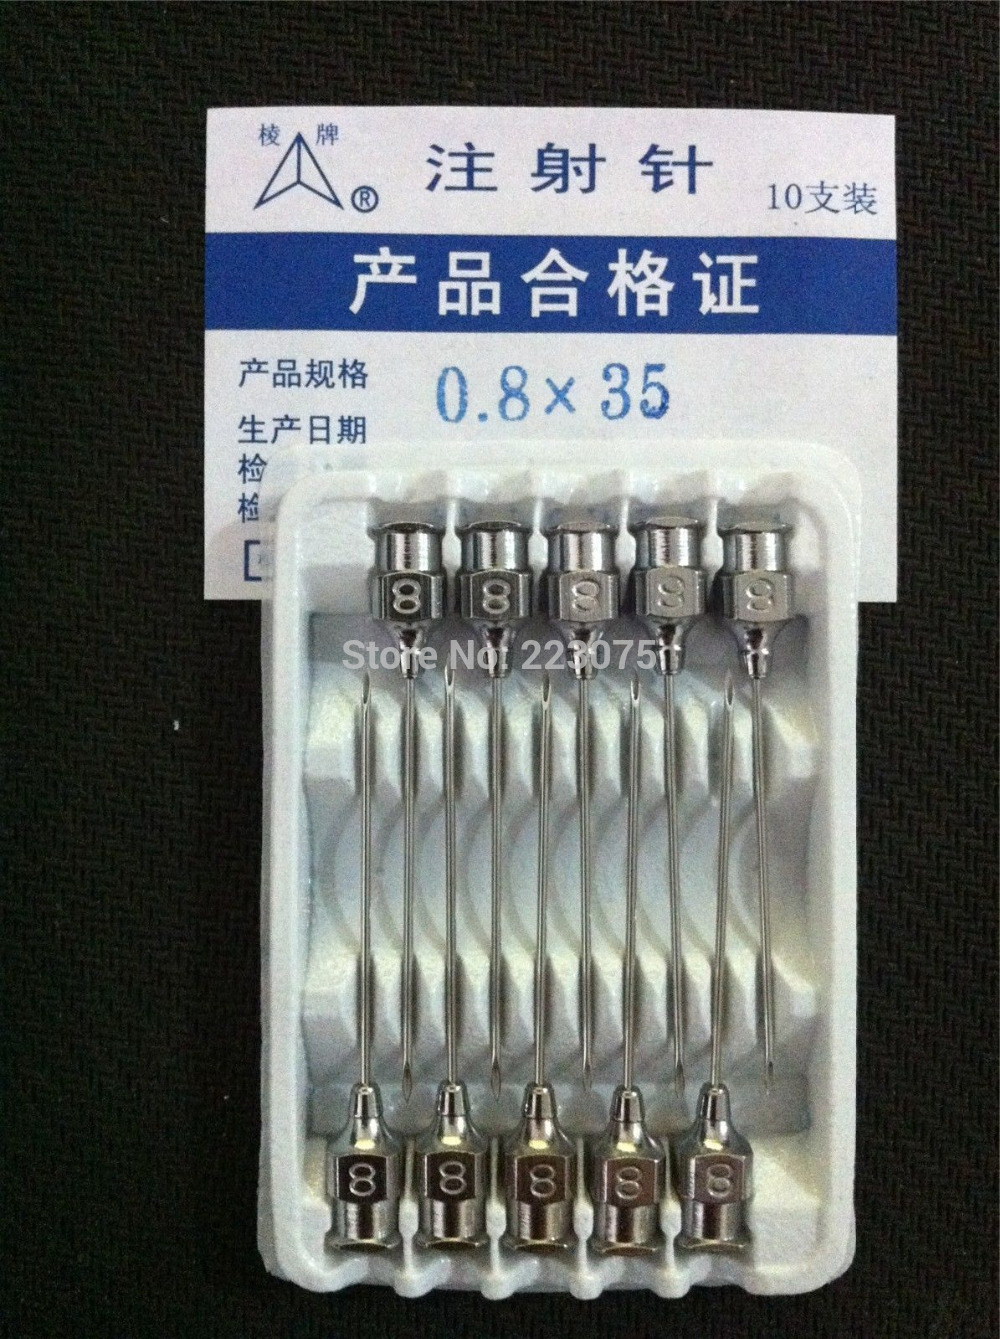 Hot Sex Products Pill Case Suplementos Protein New 10pcs Stainless Steel Syringe Needle Dispensing Needles 0.8x35mm